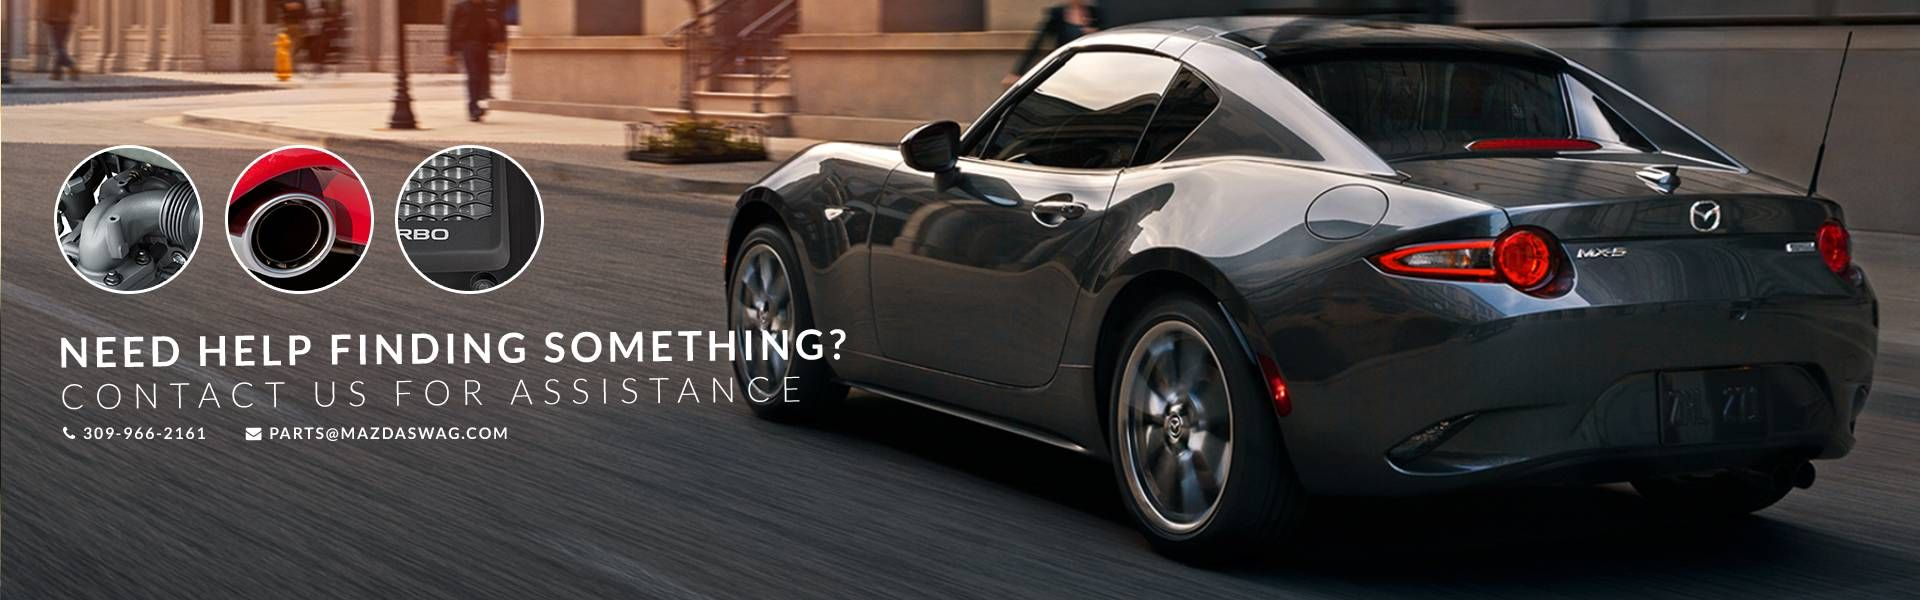 Need help finding something? Contact us for assistance. 309-966-2161 parts@mazdaswag.com